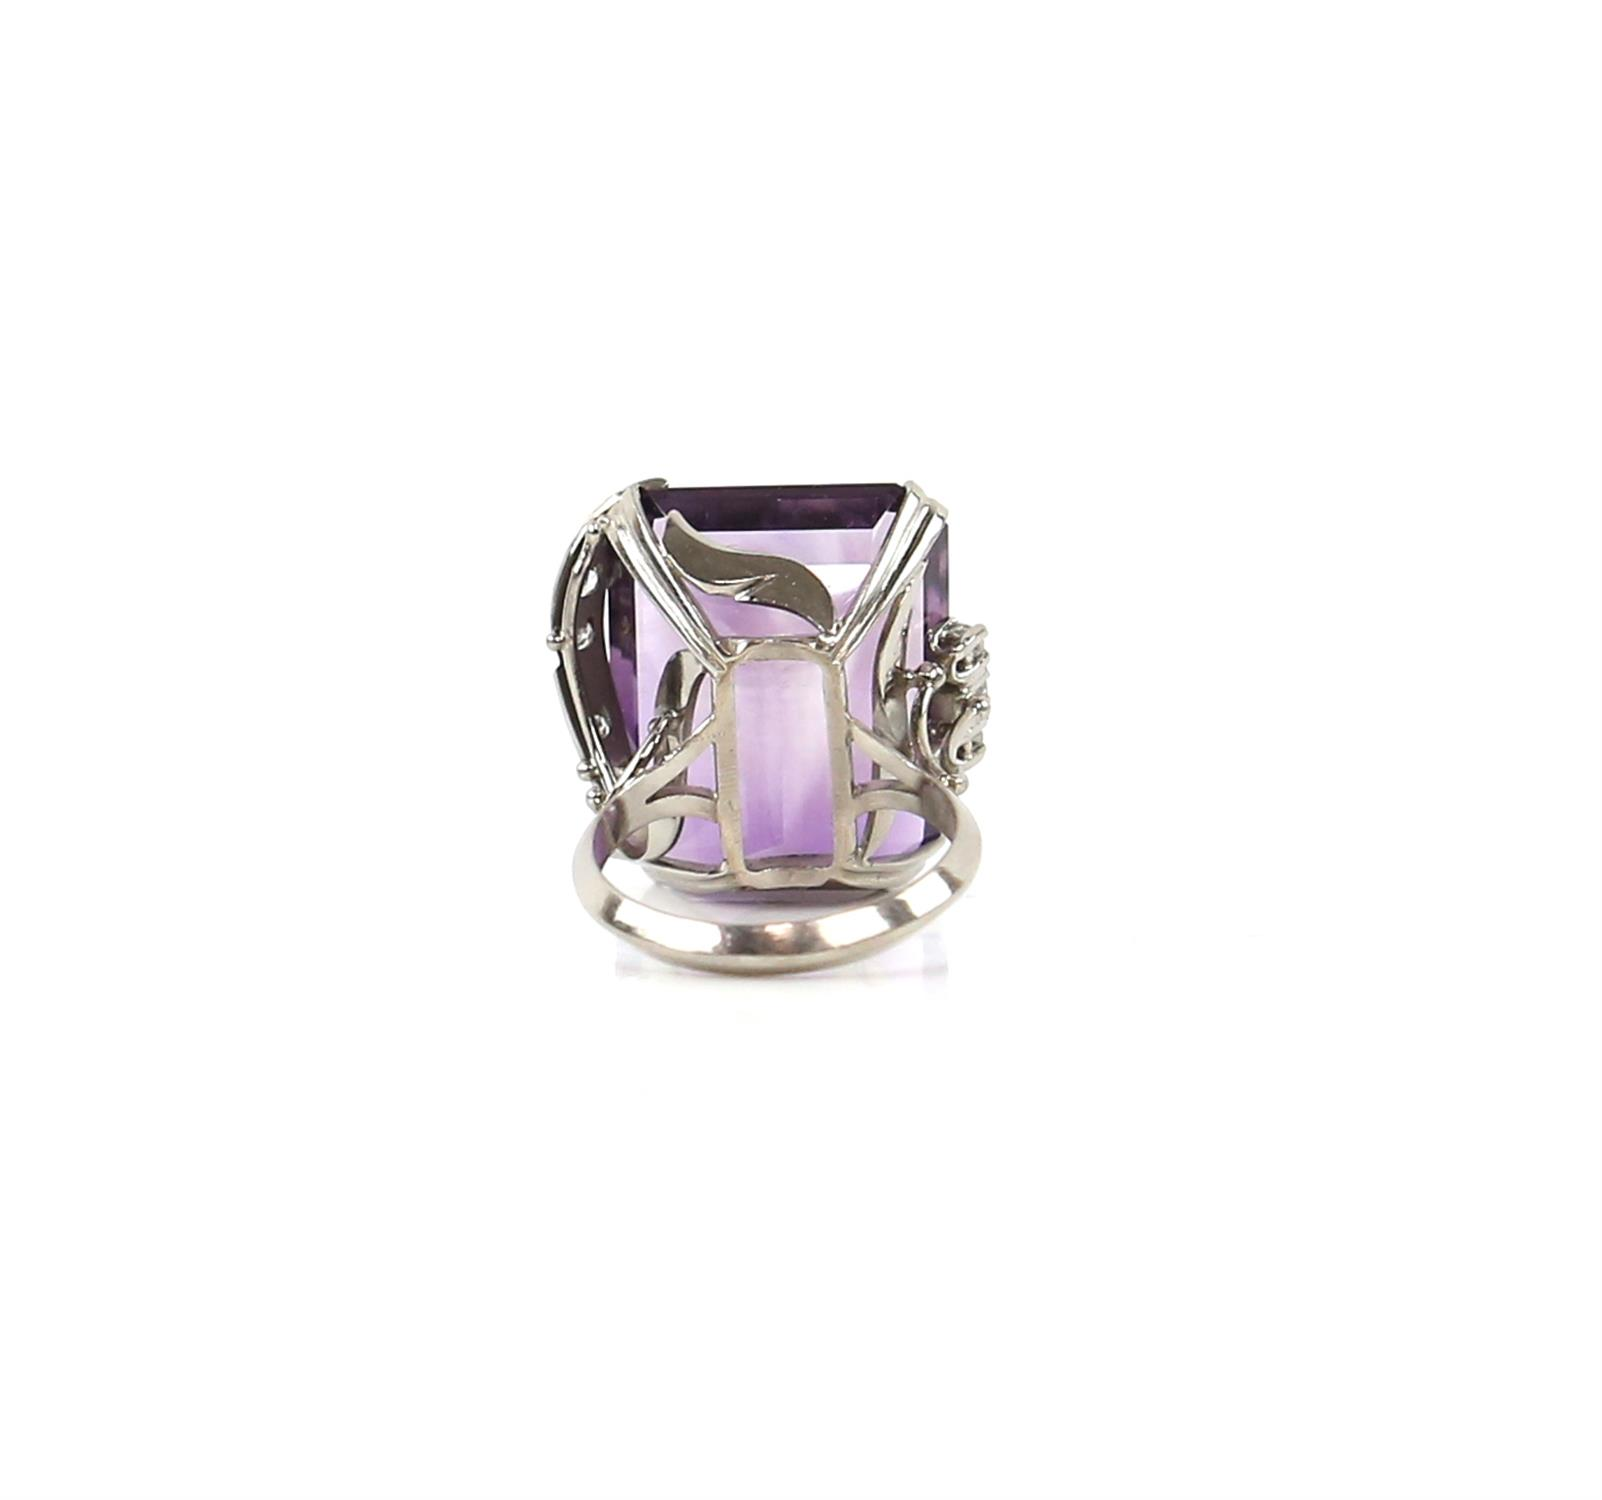 Amethyst and diamond cocktail ring, central rectangular cut amethyst, estimate weight 22.78 carats, - Image 7 of 7